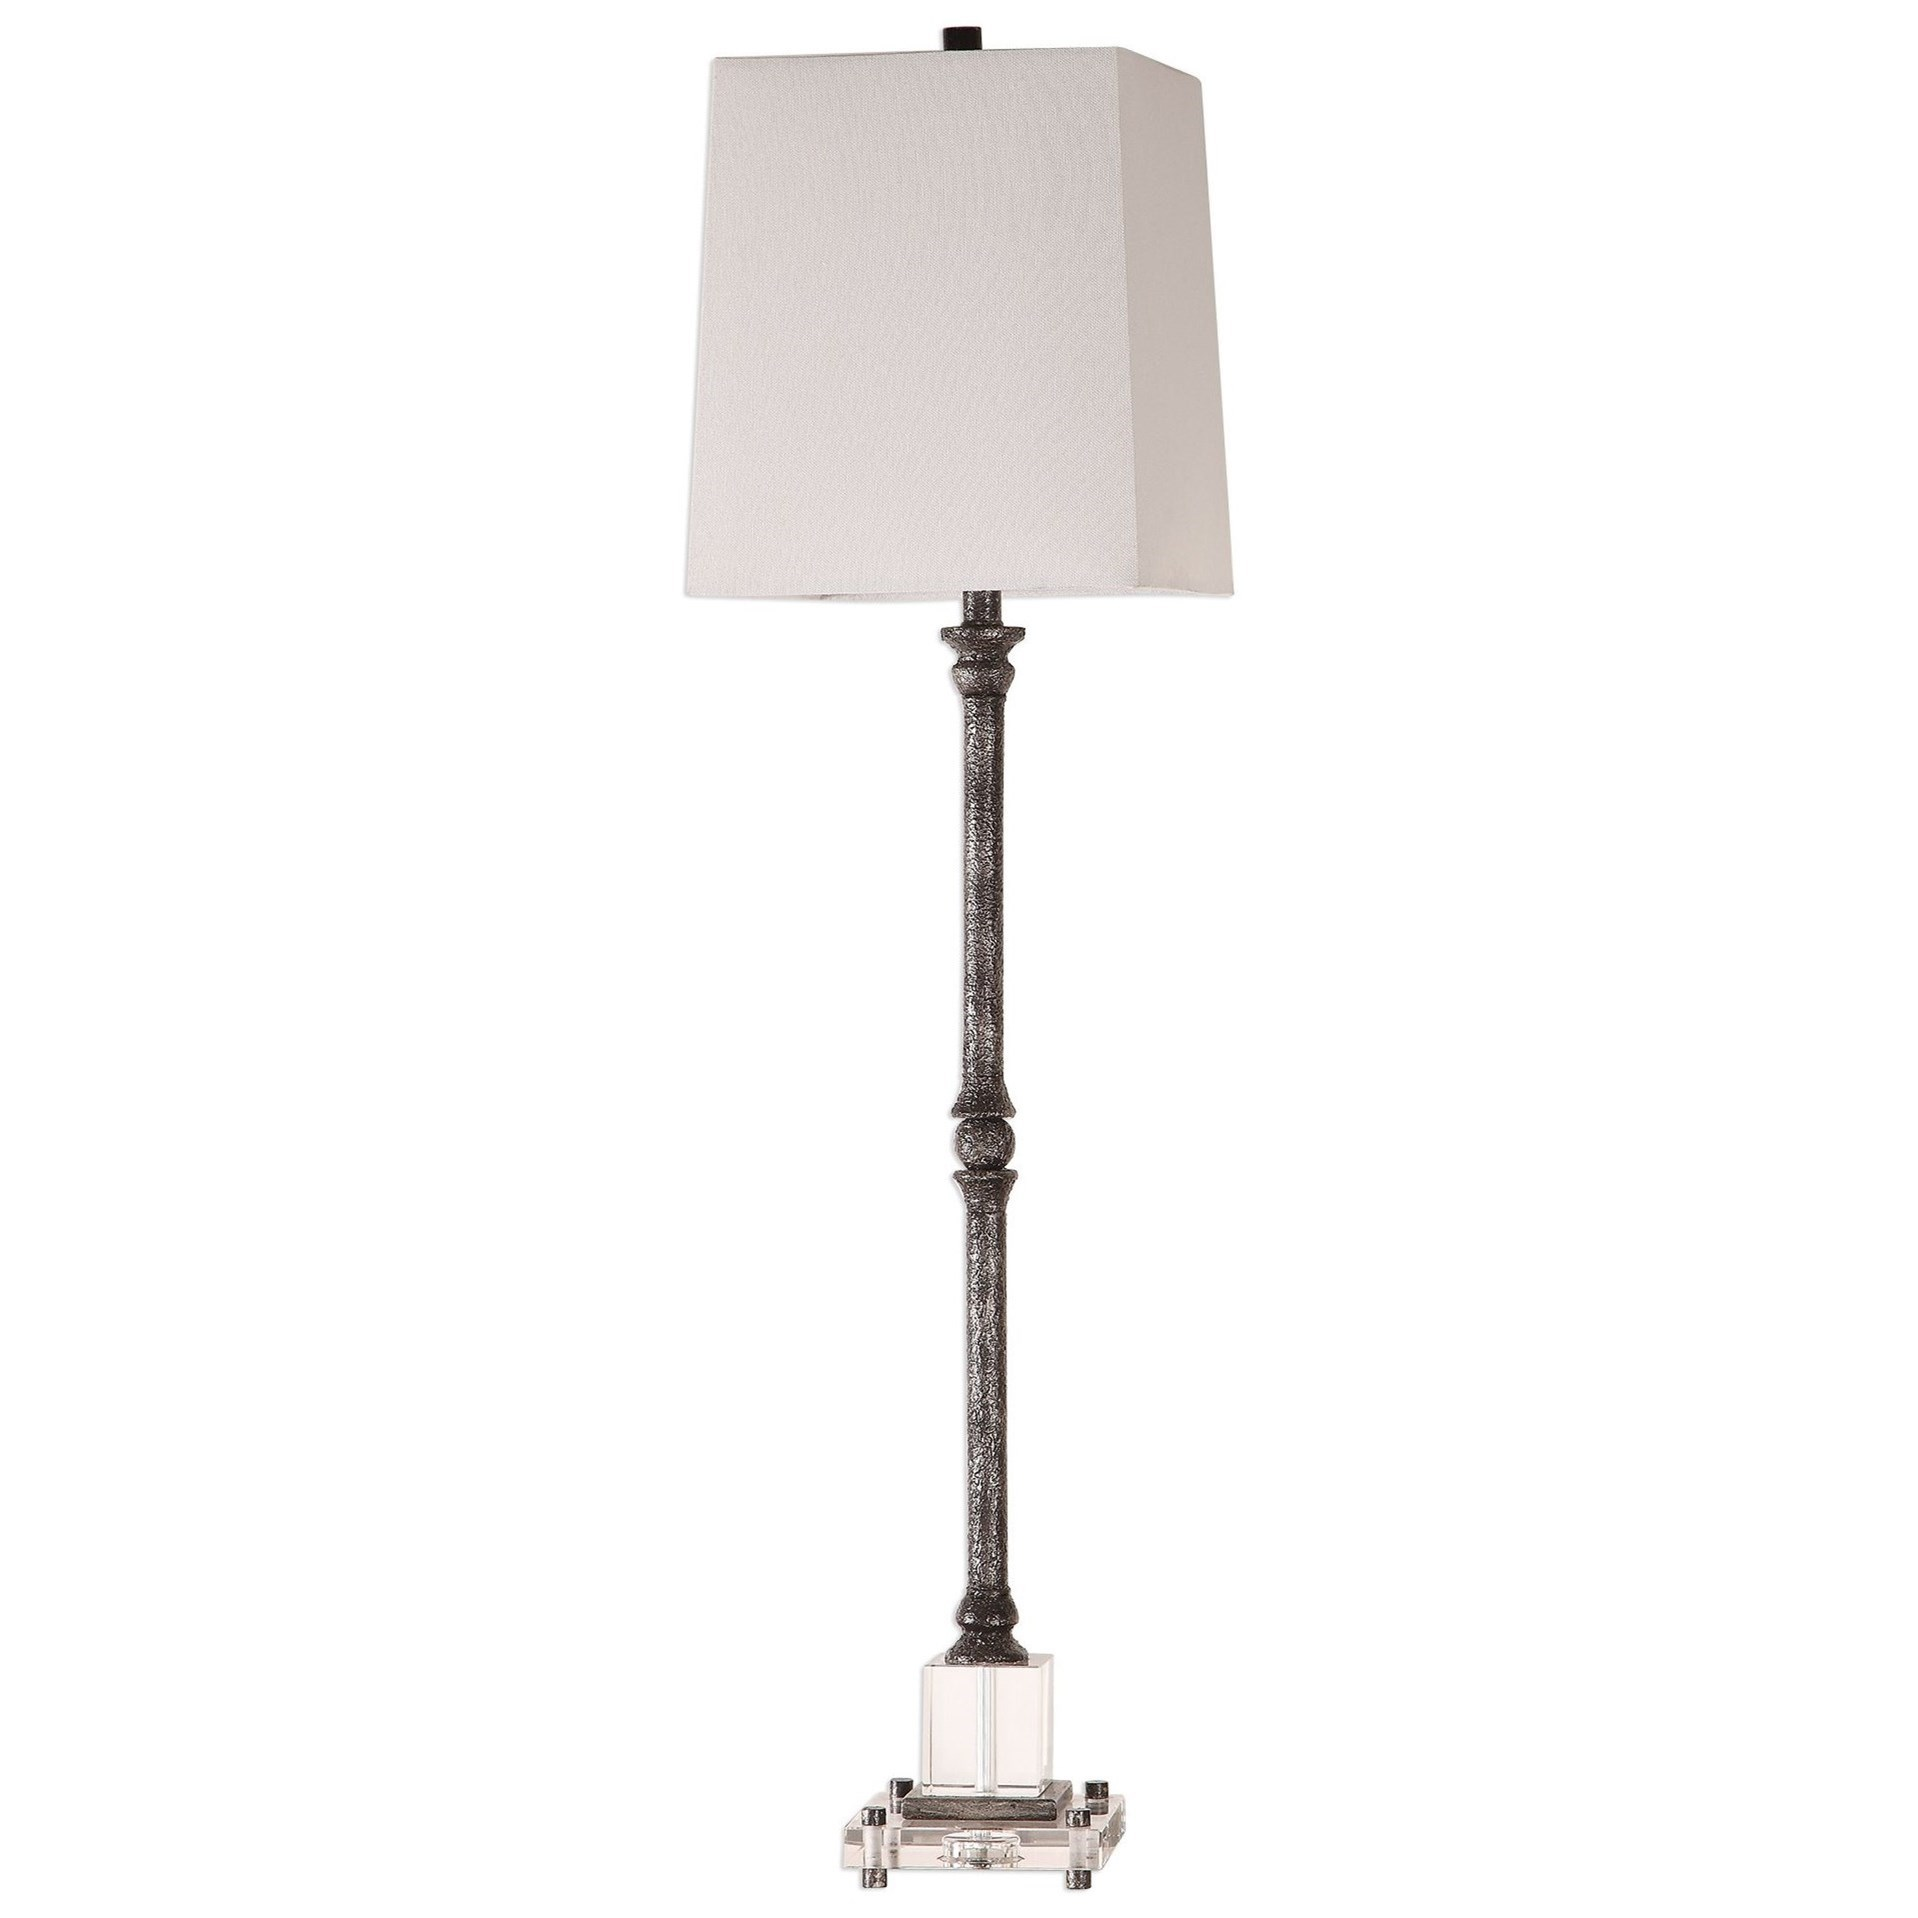 Buffet Lamps Teala Aged Black Buffet Lamp by Uttermost at Suburban Furniture